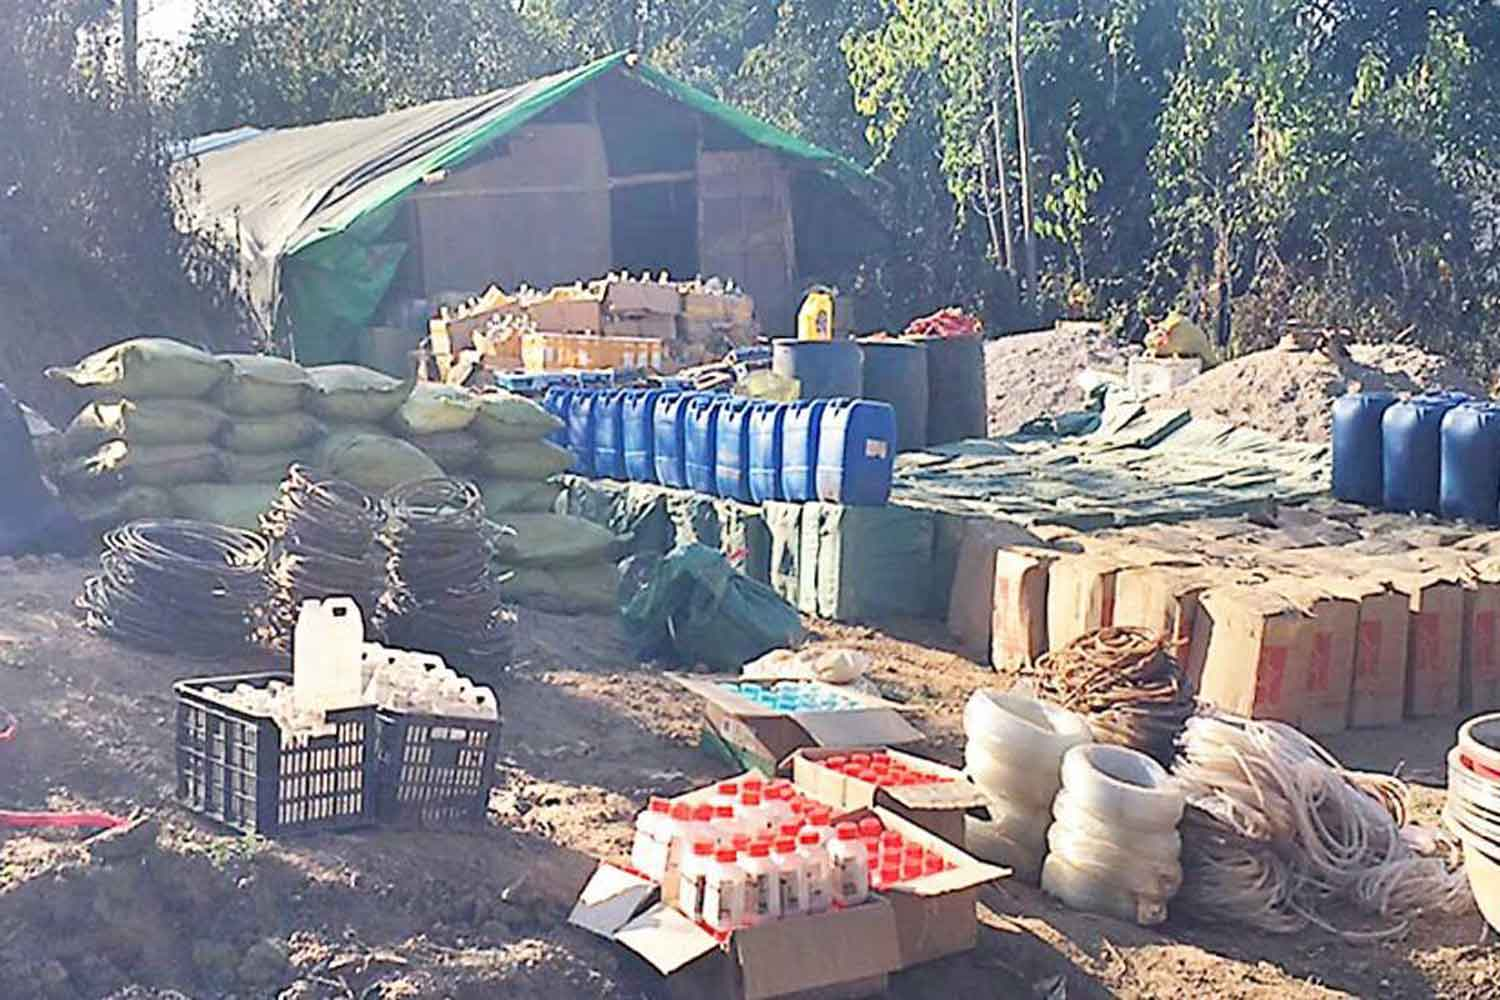 Some of the hundreds of containers of chemicals and precursors found at the plant in Kutkai township of the Shan State of Myanmar, raided by the Myanmar armed forces last Friday. (Photo supplied)